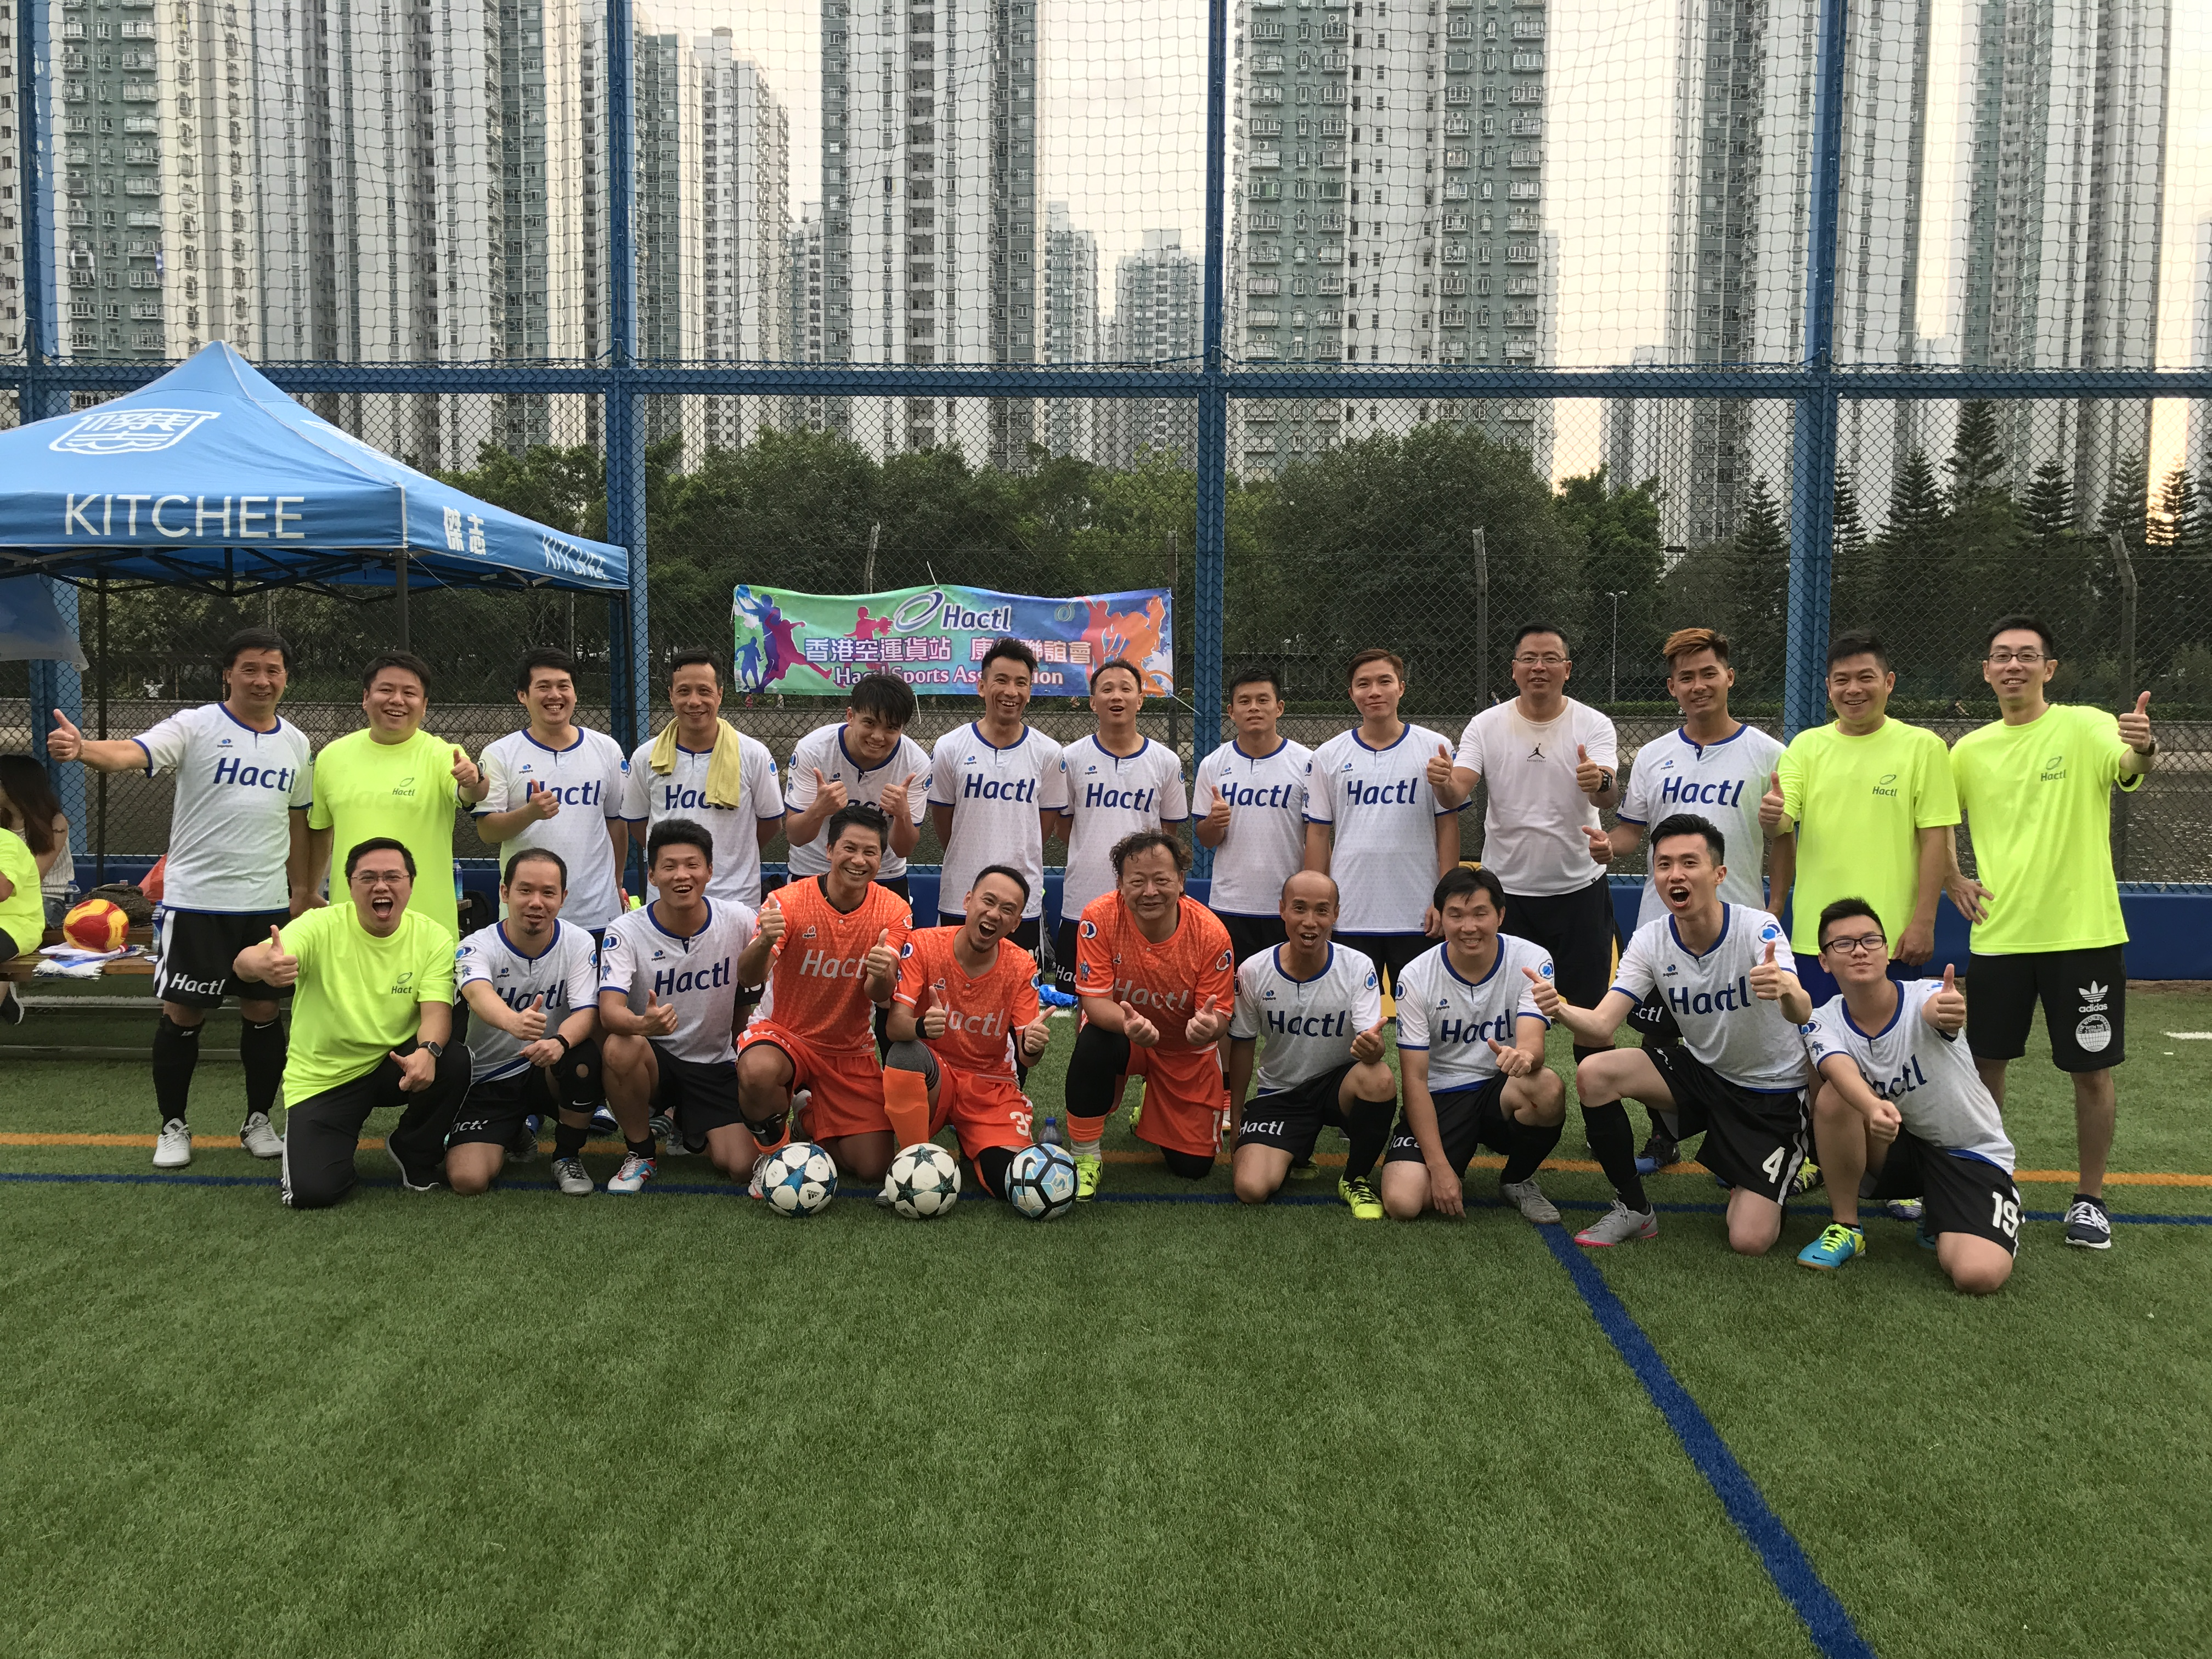 Hactl team completes in 7-a-side Soccer Tournament